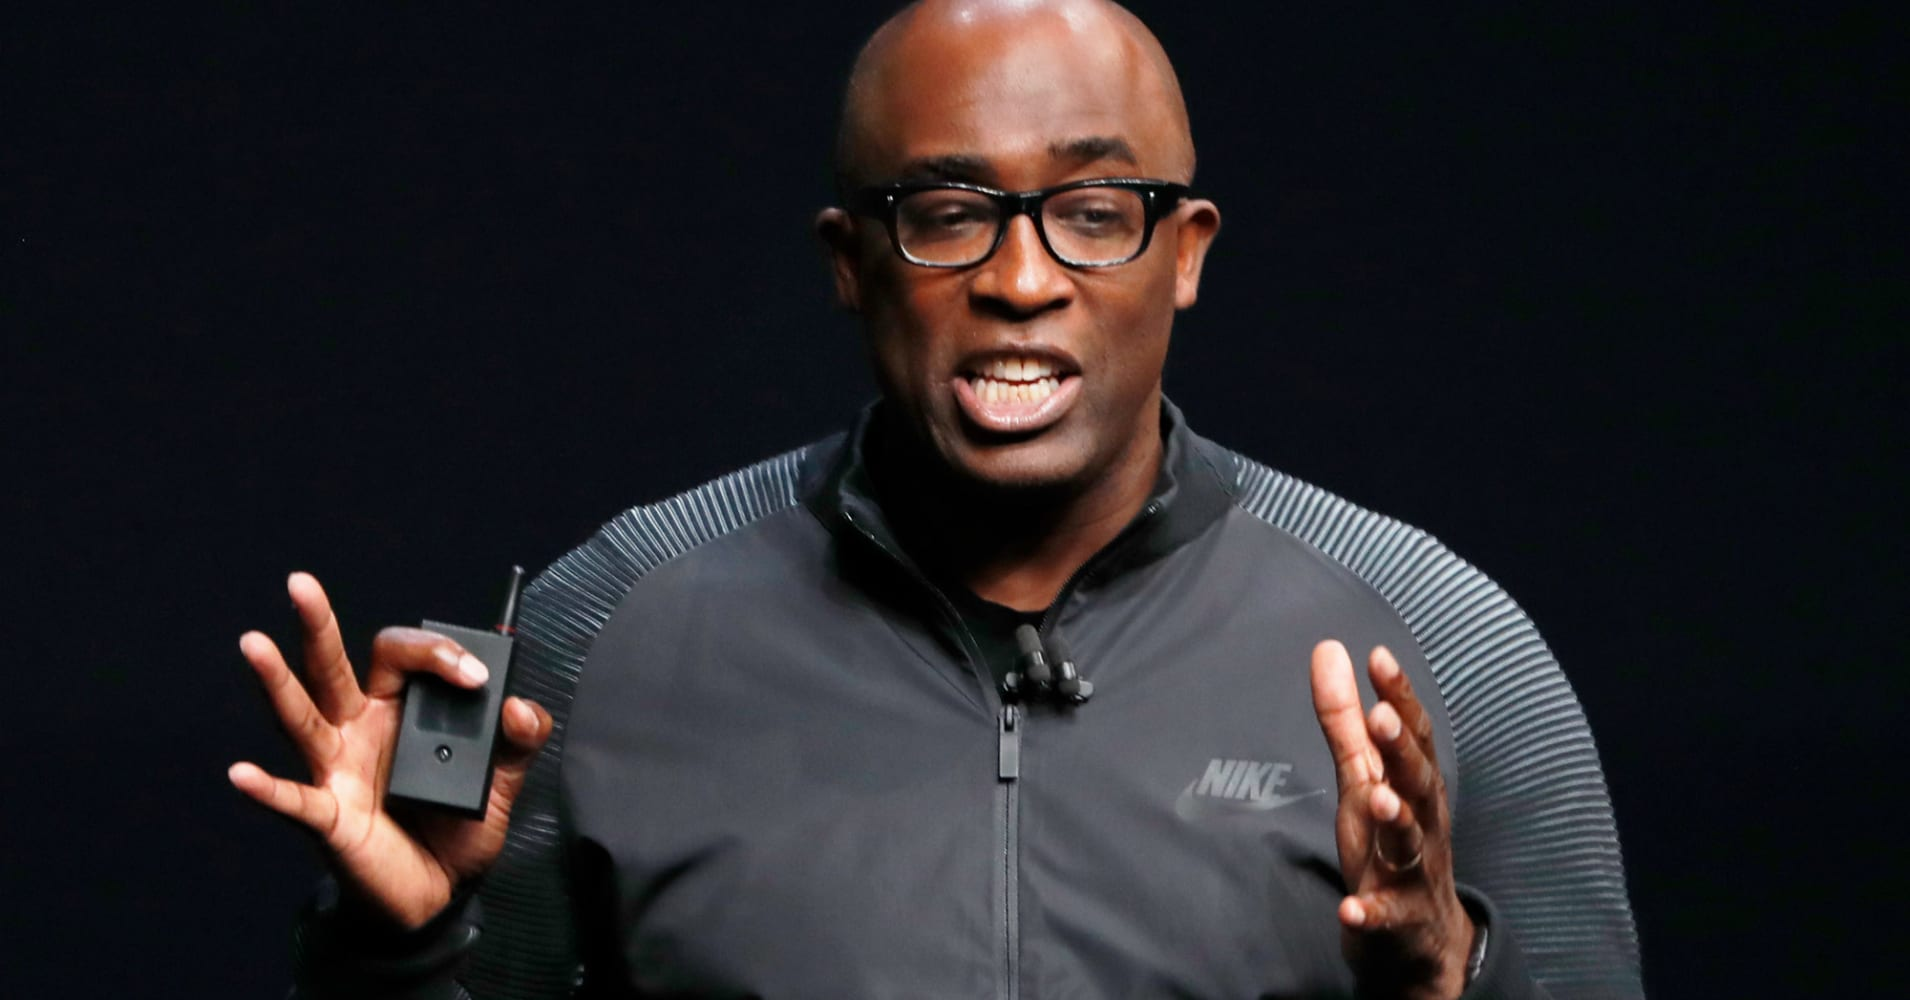 Nike executive resigns amid complaints about workplace conduct